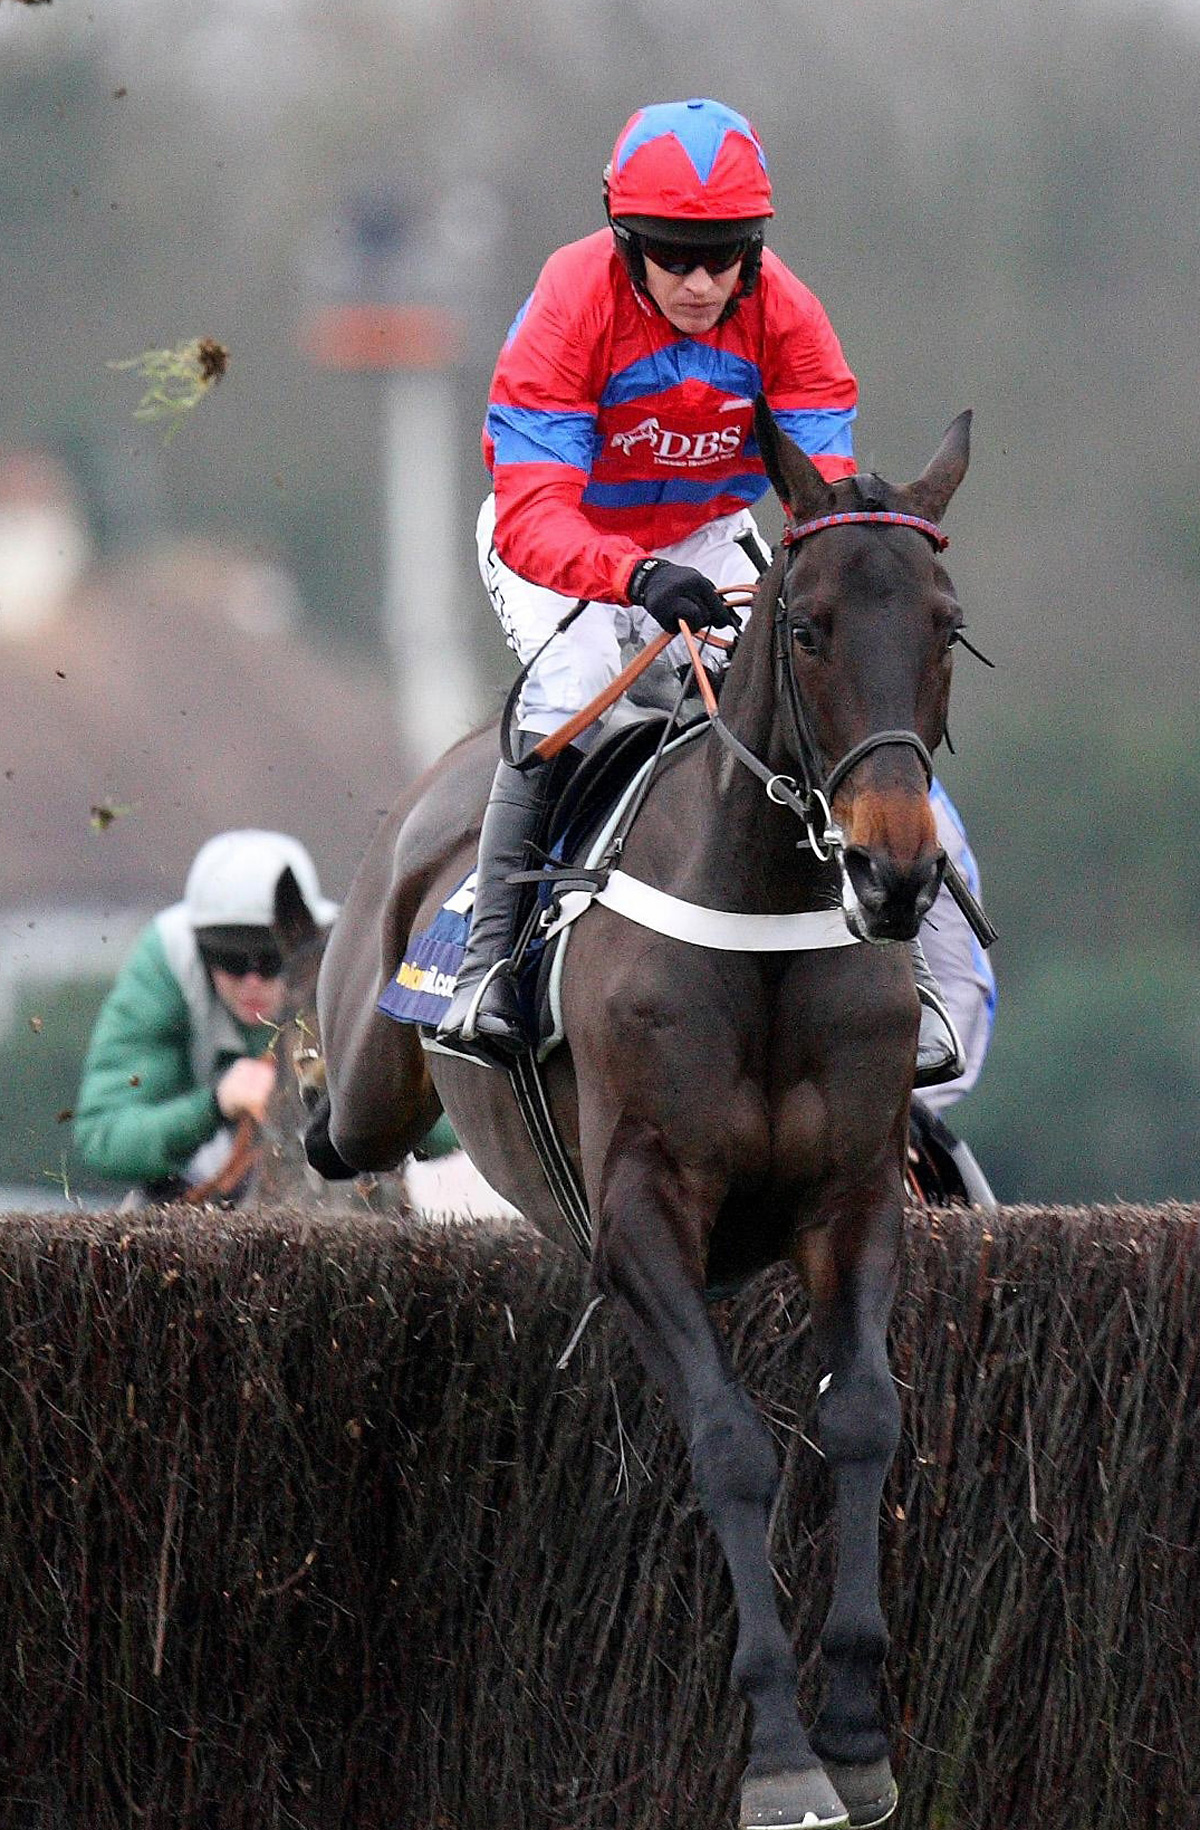 Sprinter Sacre,  ridden by Barry Geraghty, on the way to a previous victory at Kempton Park, the course where he was pulled up last week and found to have an irregular heartbeat